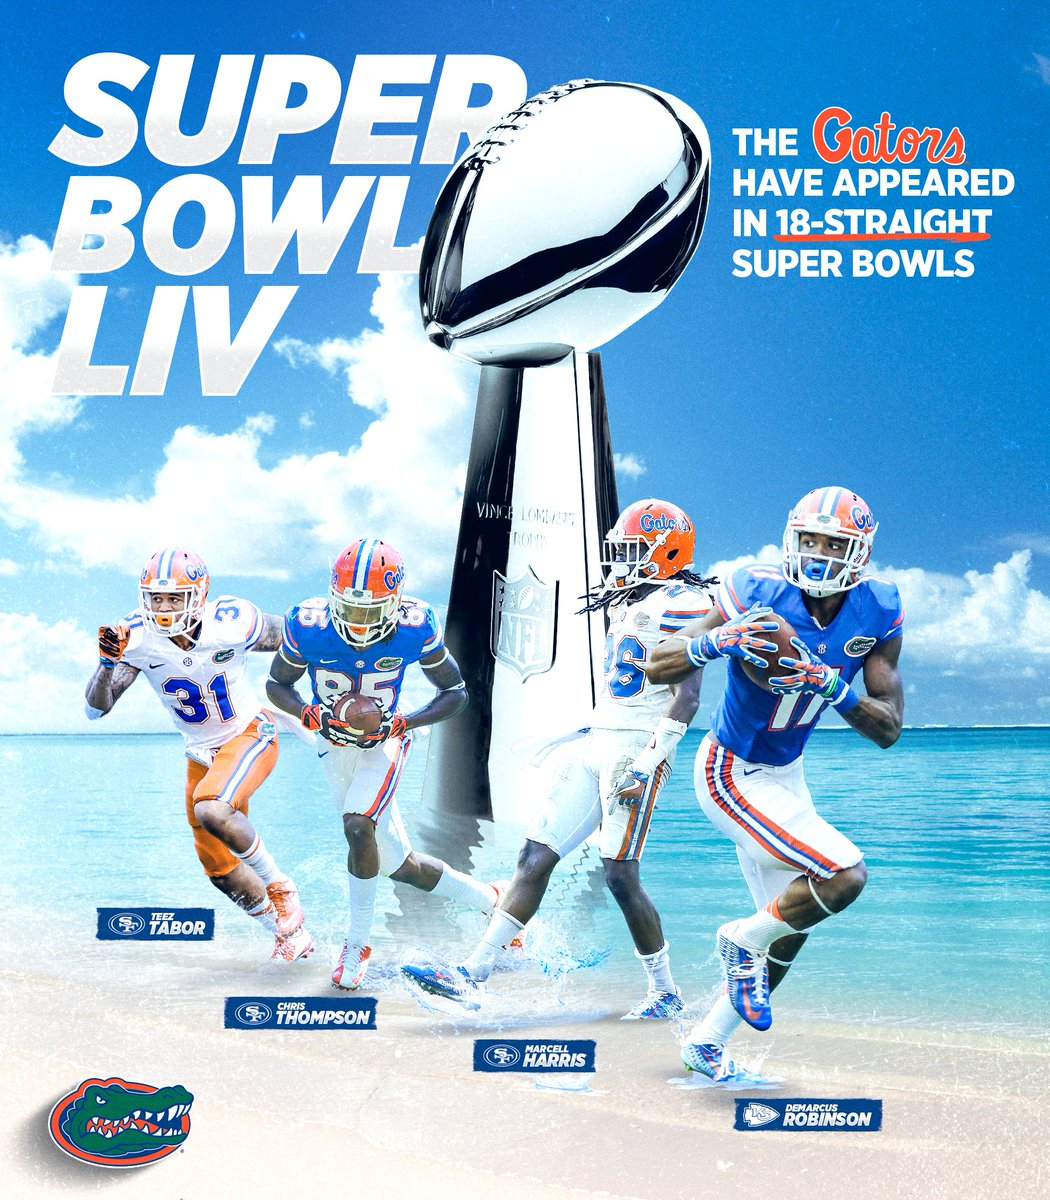 A few #Gators have a shot at earning a 💍 this Sunday. Who do you think brings home the hardware? #SuperBowlLIV x #GatorMade 🐊